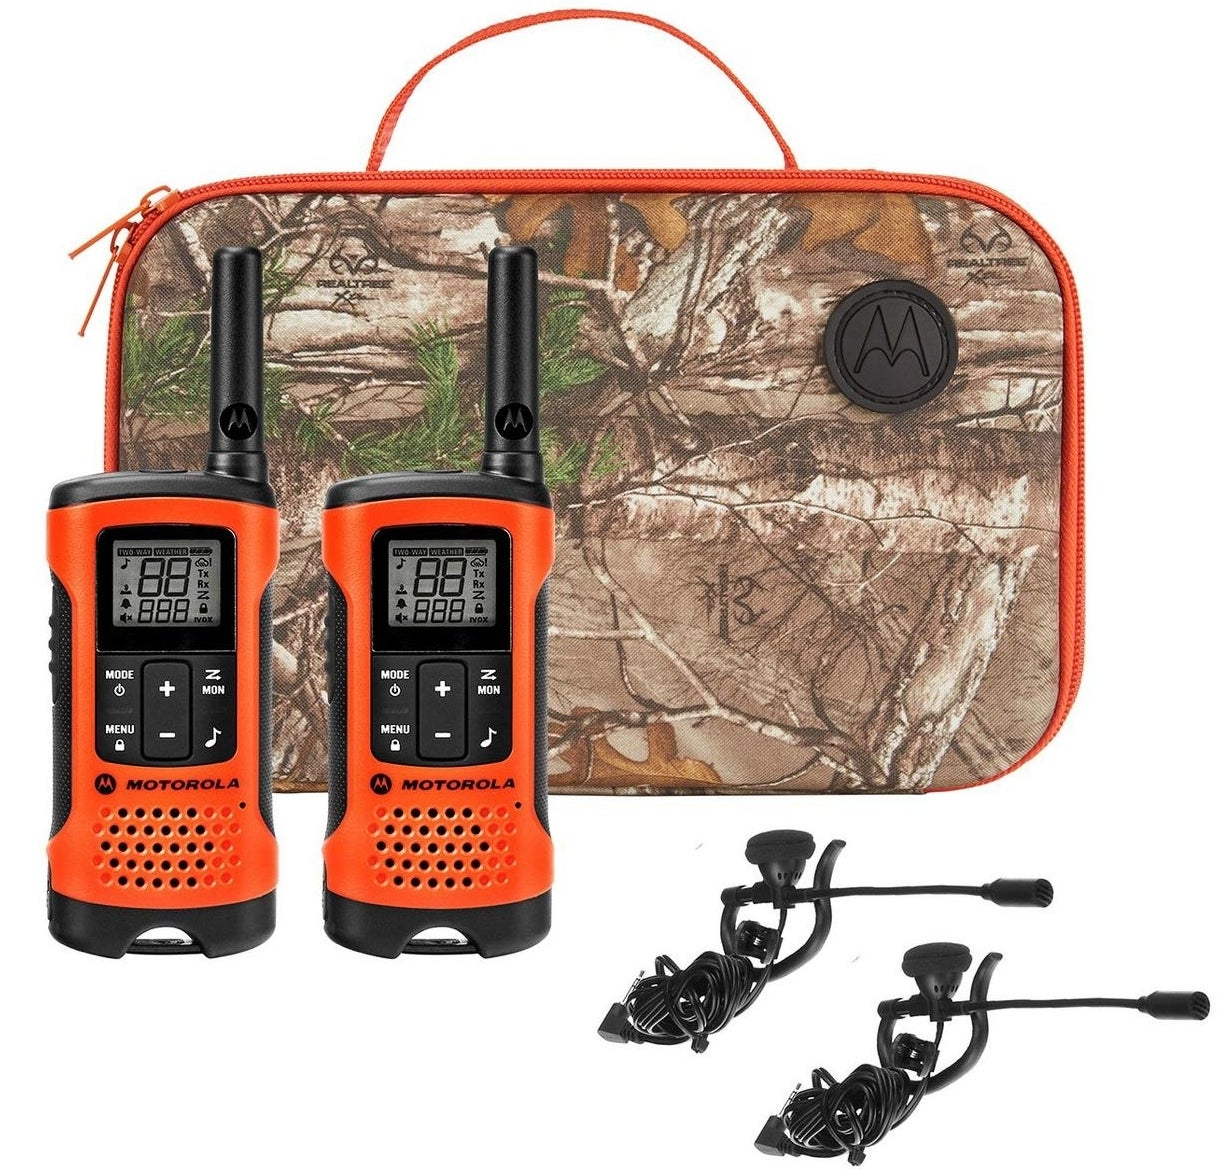 the two orange radios, with a camo carrying case